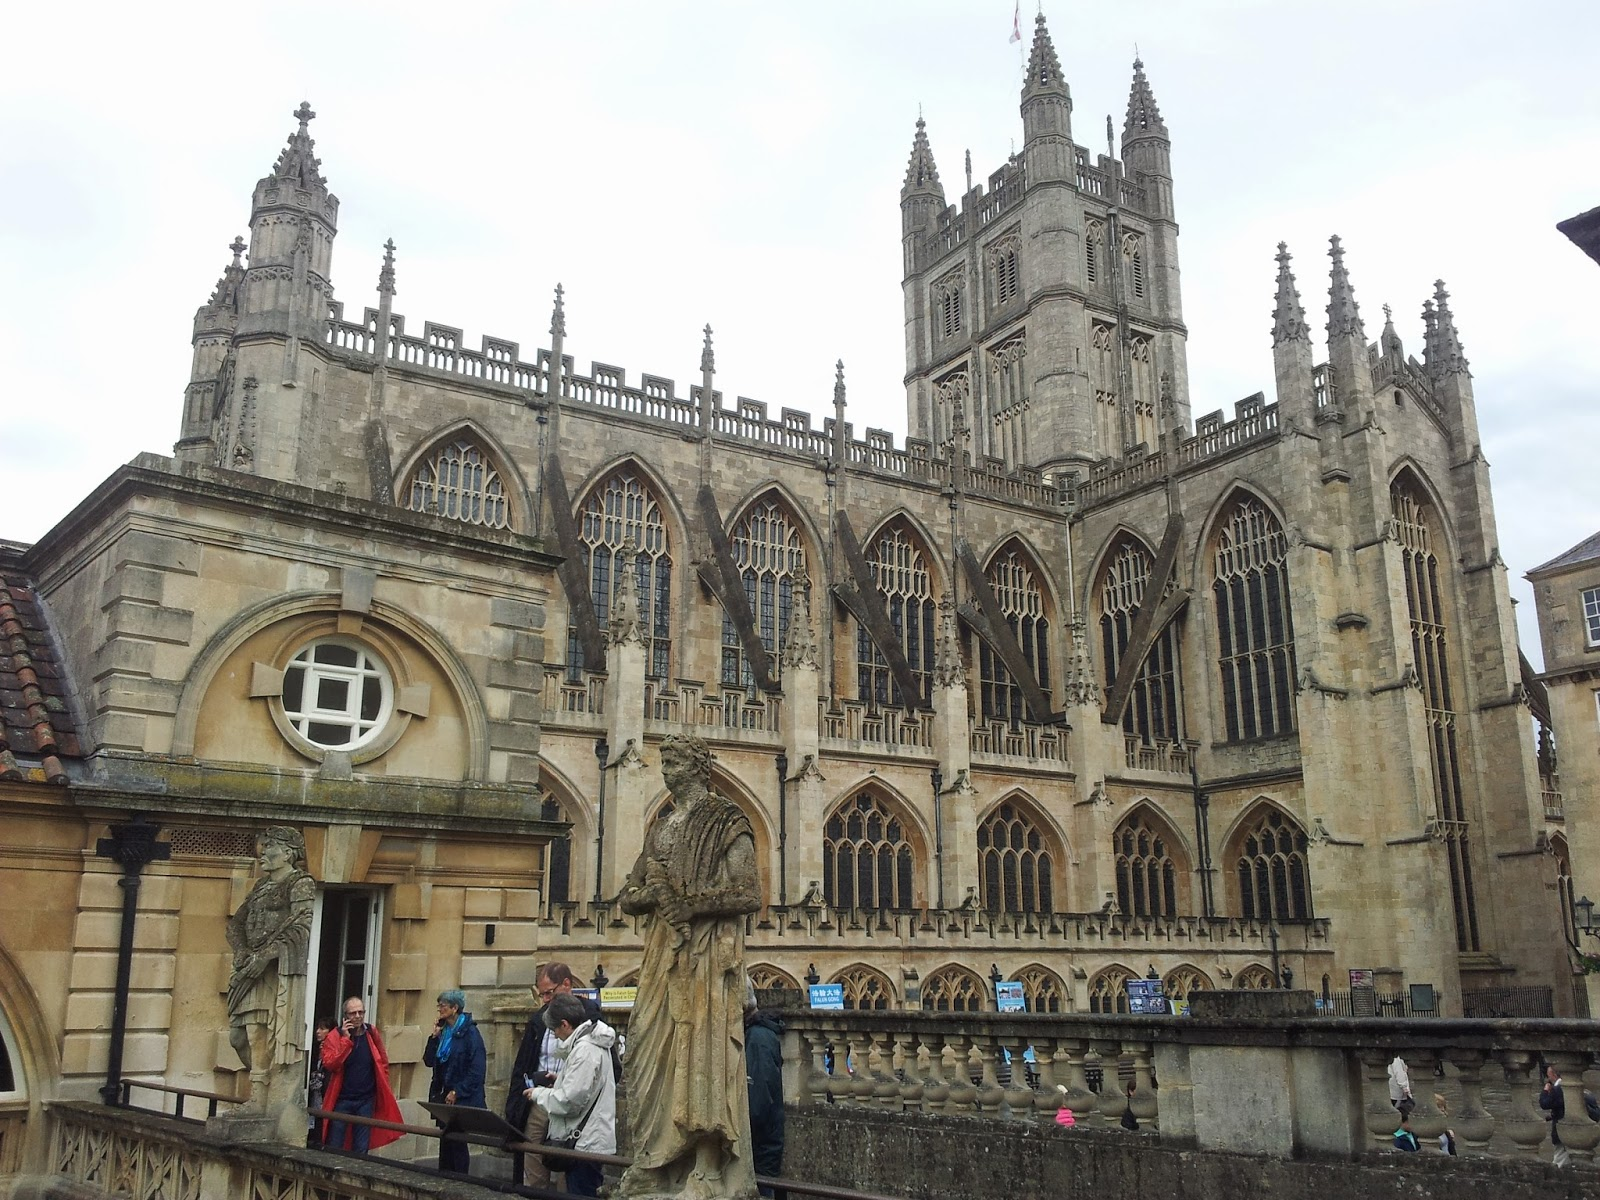 Roman baths overlooked by Bath Abbey